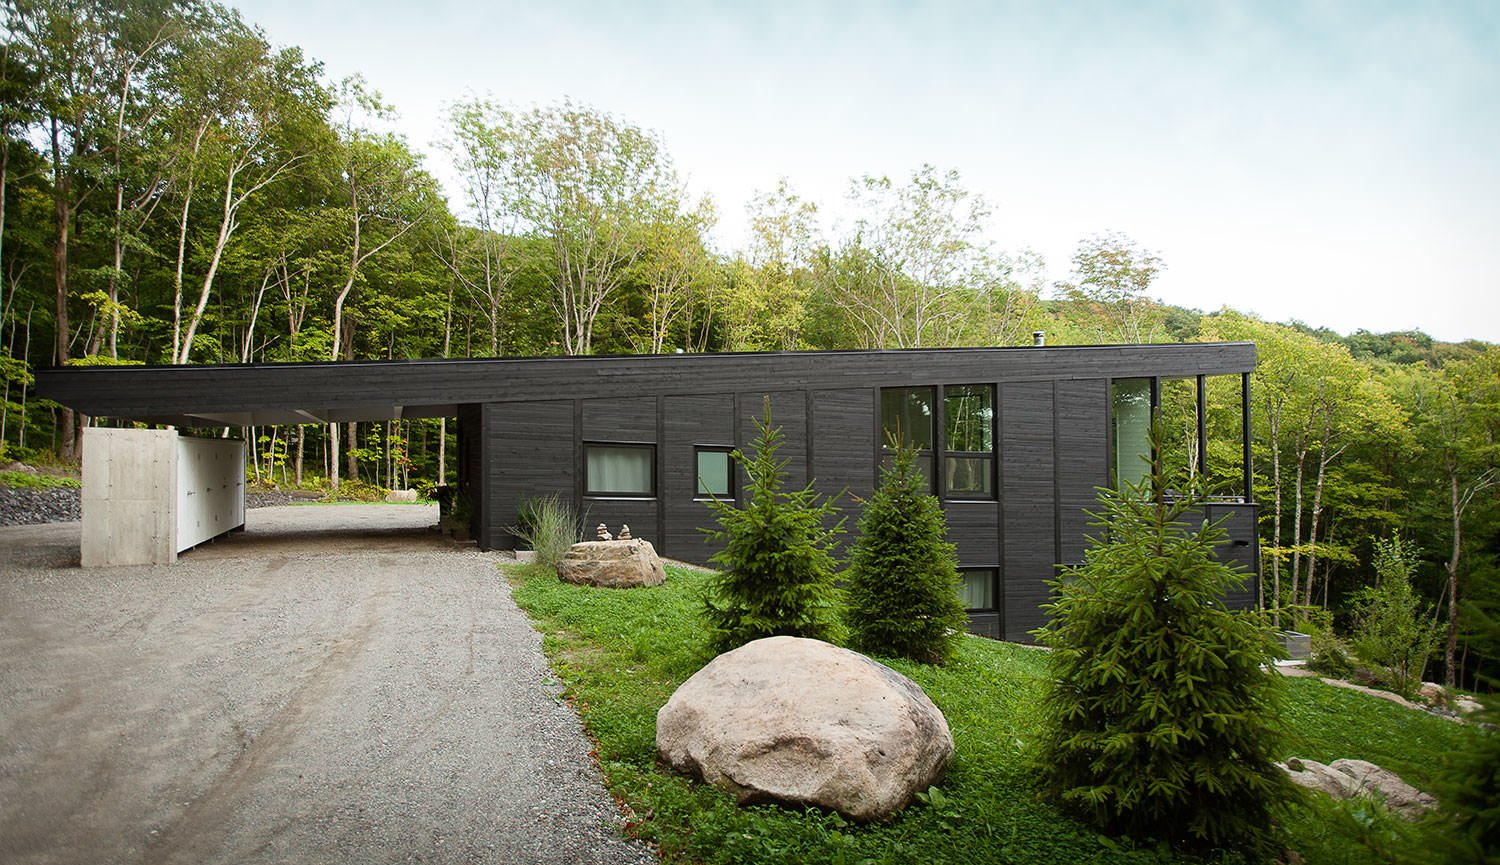 7 Incredible Modern Homes by Canadian Architect Paul Bernier - Photo 4 of 7 - Cedar planks on the exterior walls are dyed black. On the indoor walls, the cedar planks are dyed white.